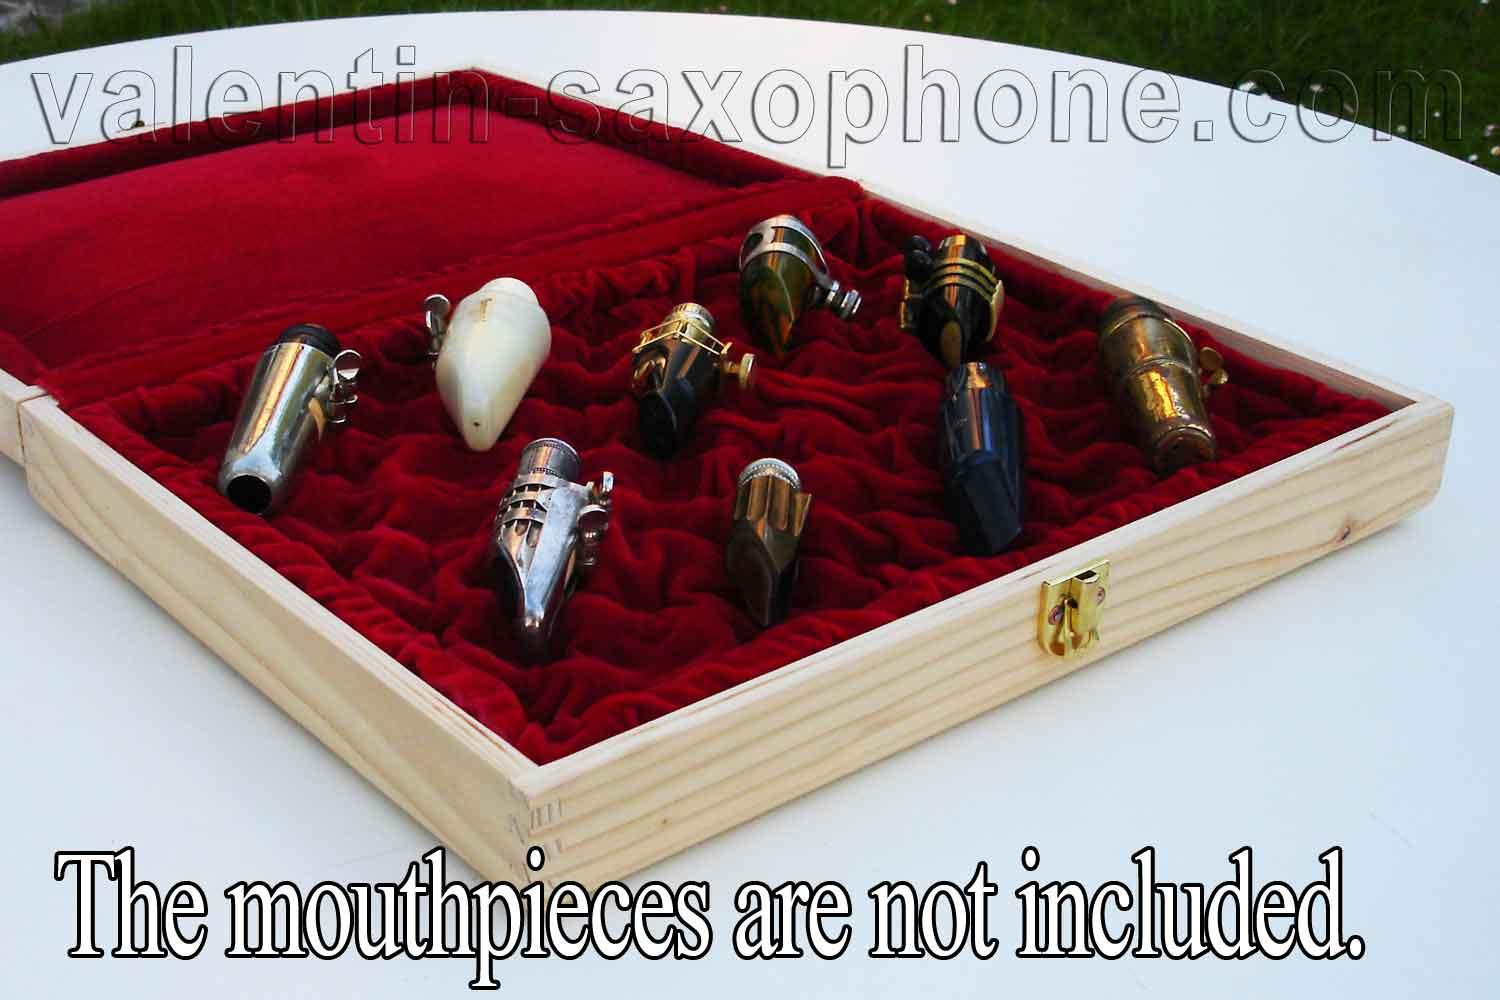 Valentin cases : This showcase will highlight your favorite mouthpieces.